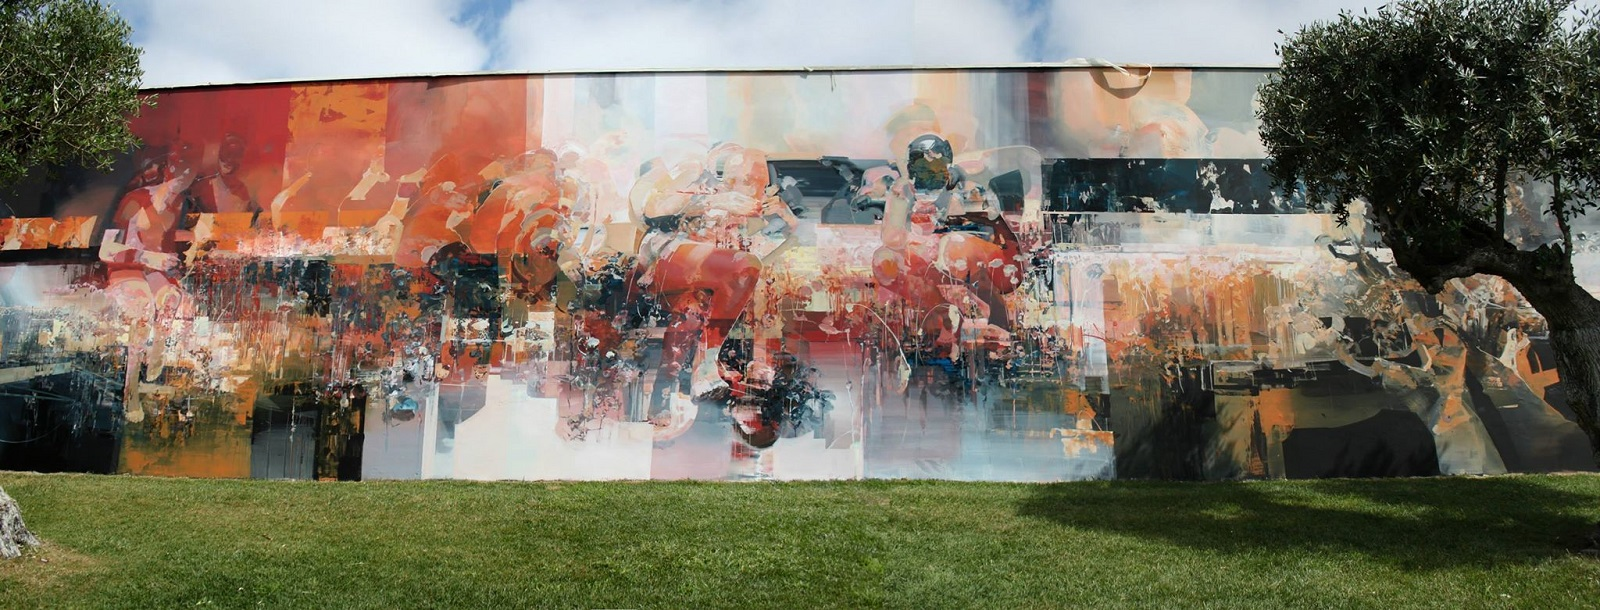 robert-proch-tweens-new-mural-01